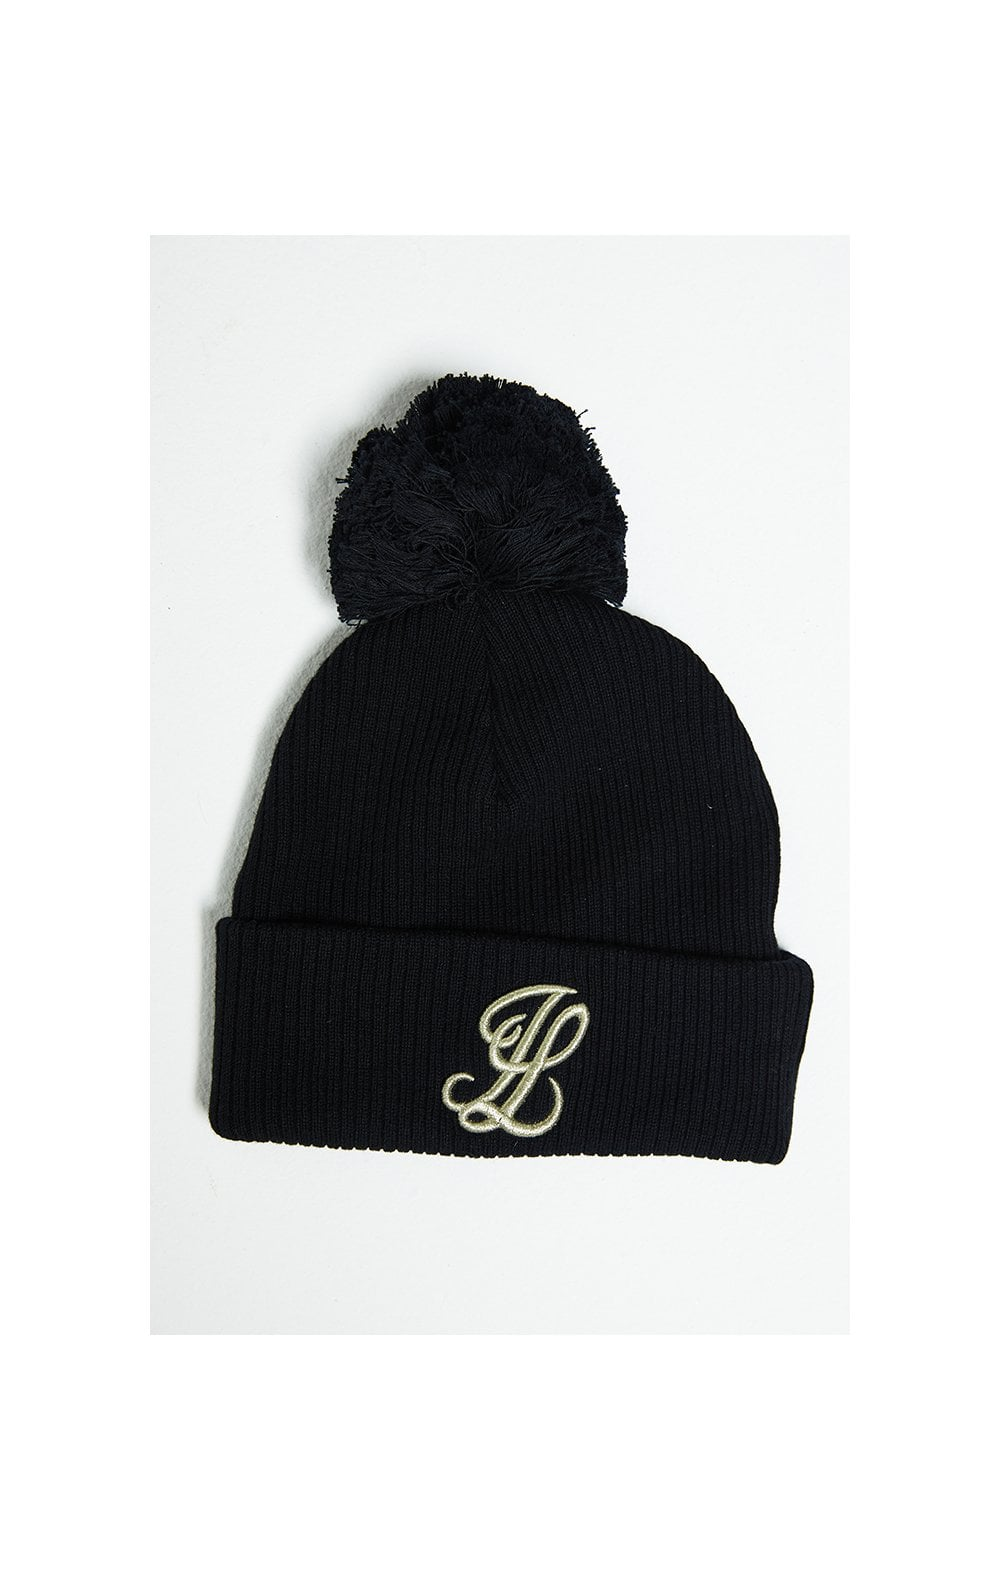 Illusive London Rib Bobble Hat - Black & Gold